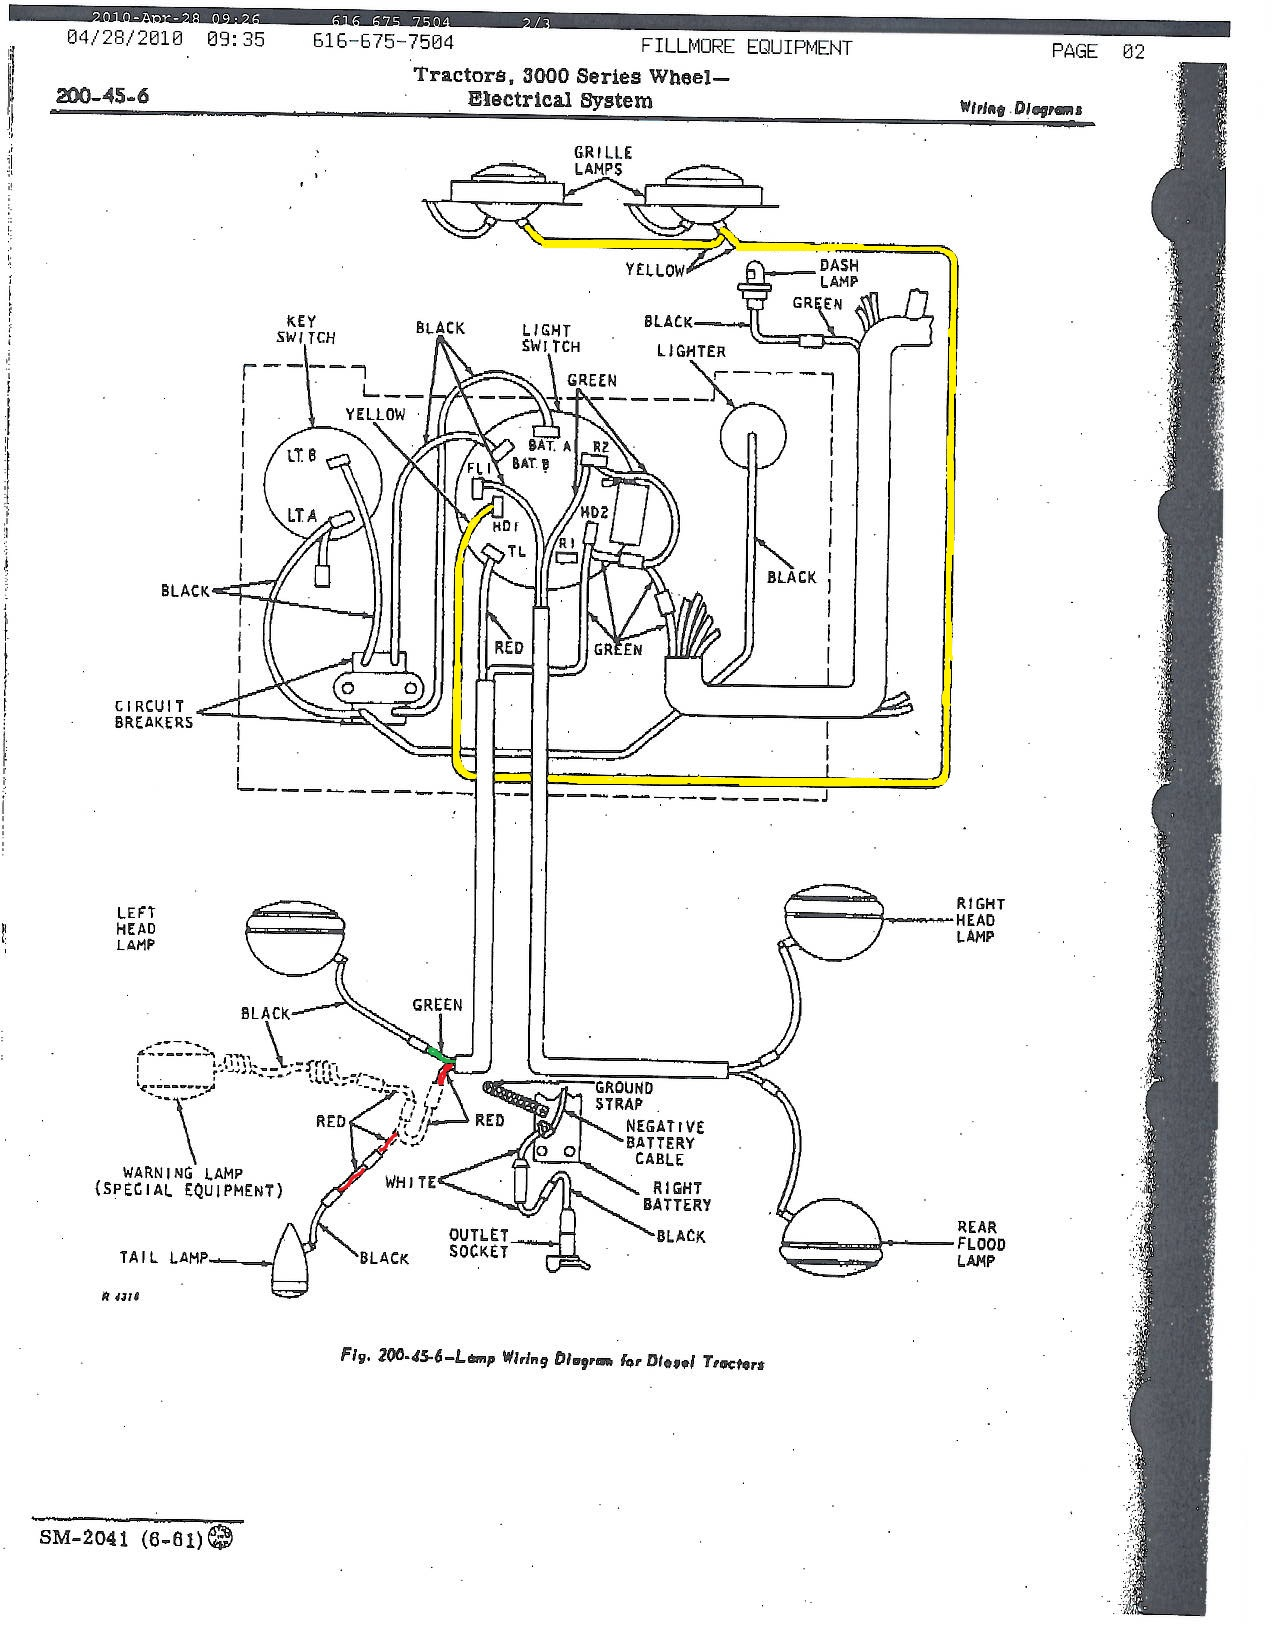 John Deere 3010 Wiring Diagram : 30 Wiring Diagram Images